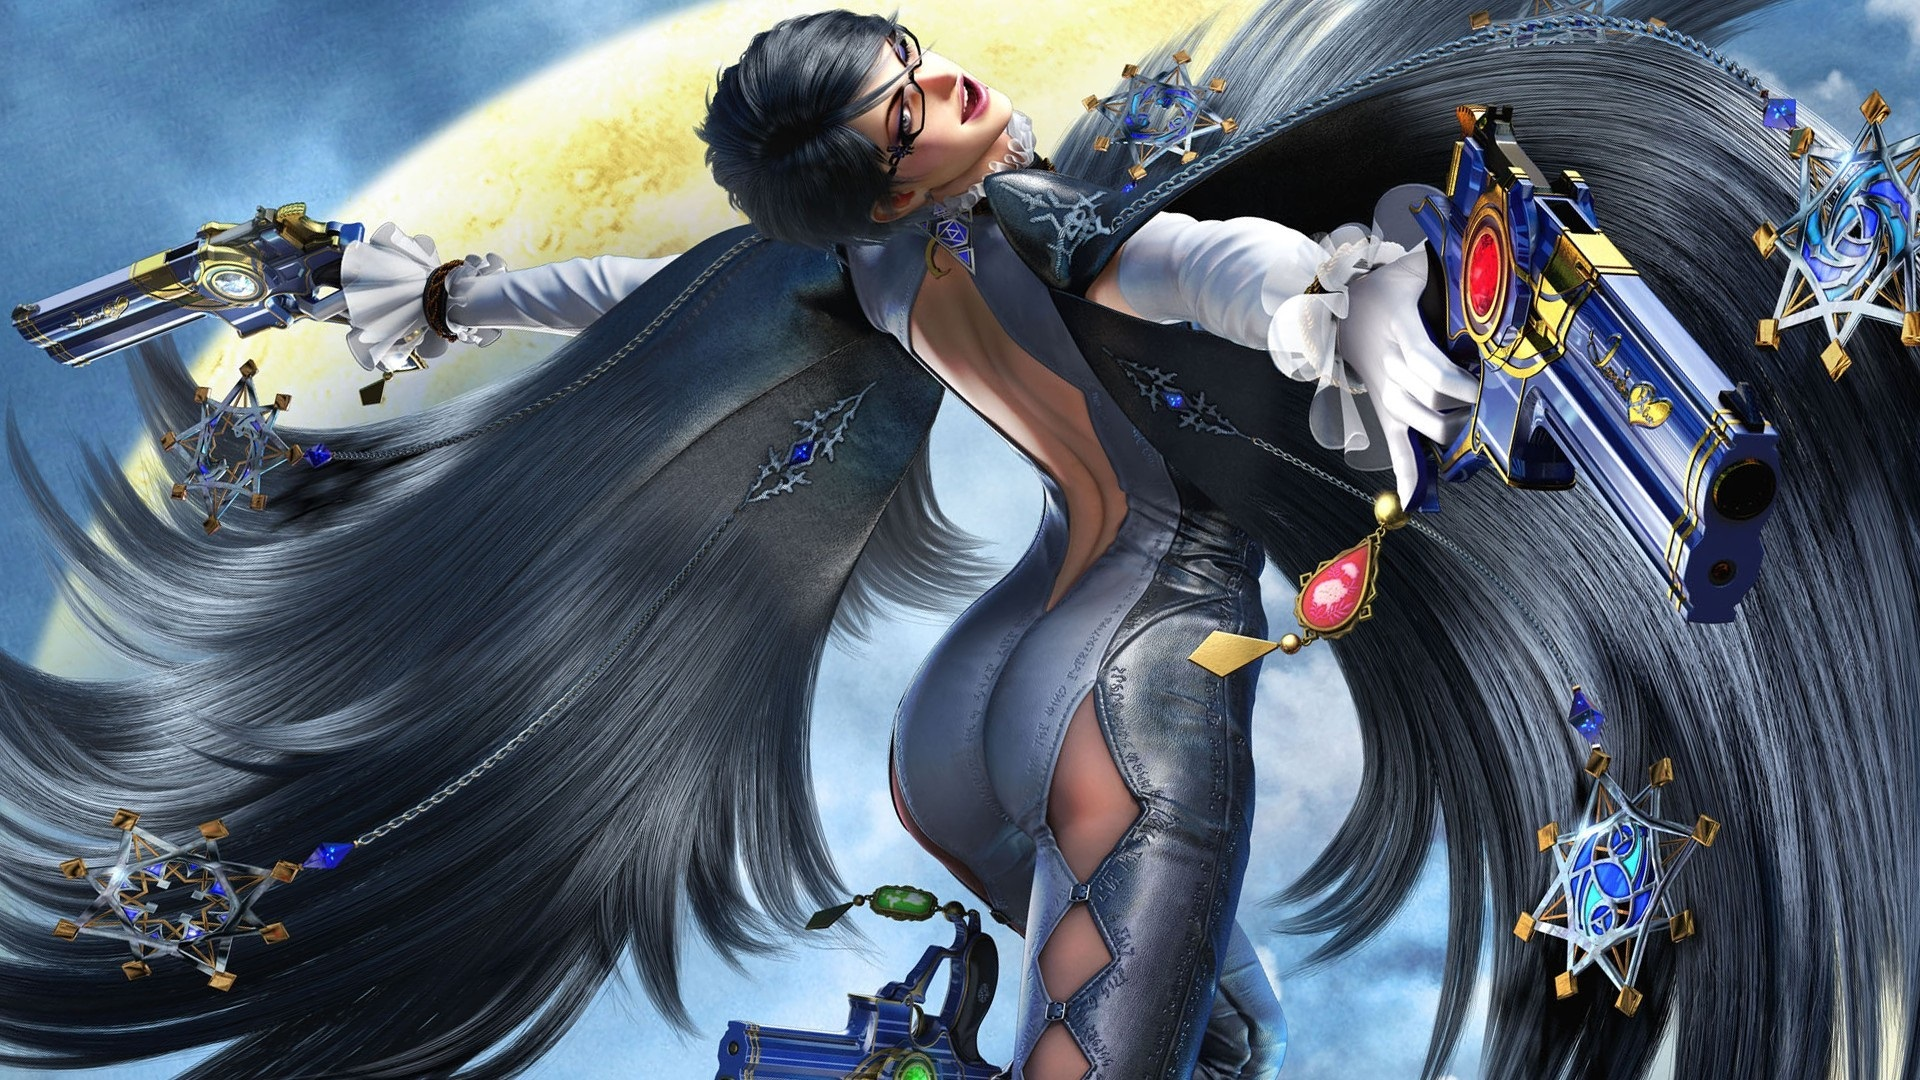 A few Nintendo-published games like Wii U exclusive <em>Bayonetta 2</em> on the Switch would help broaden the console's image considerably.